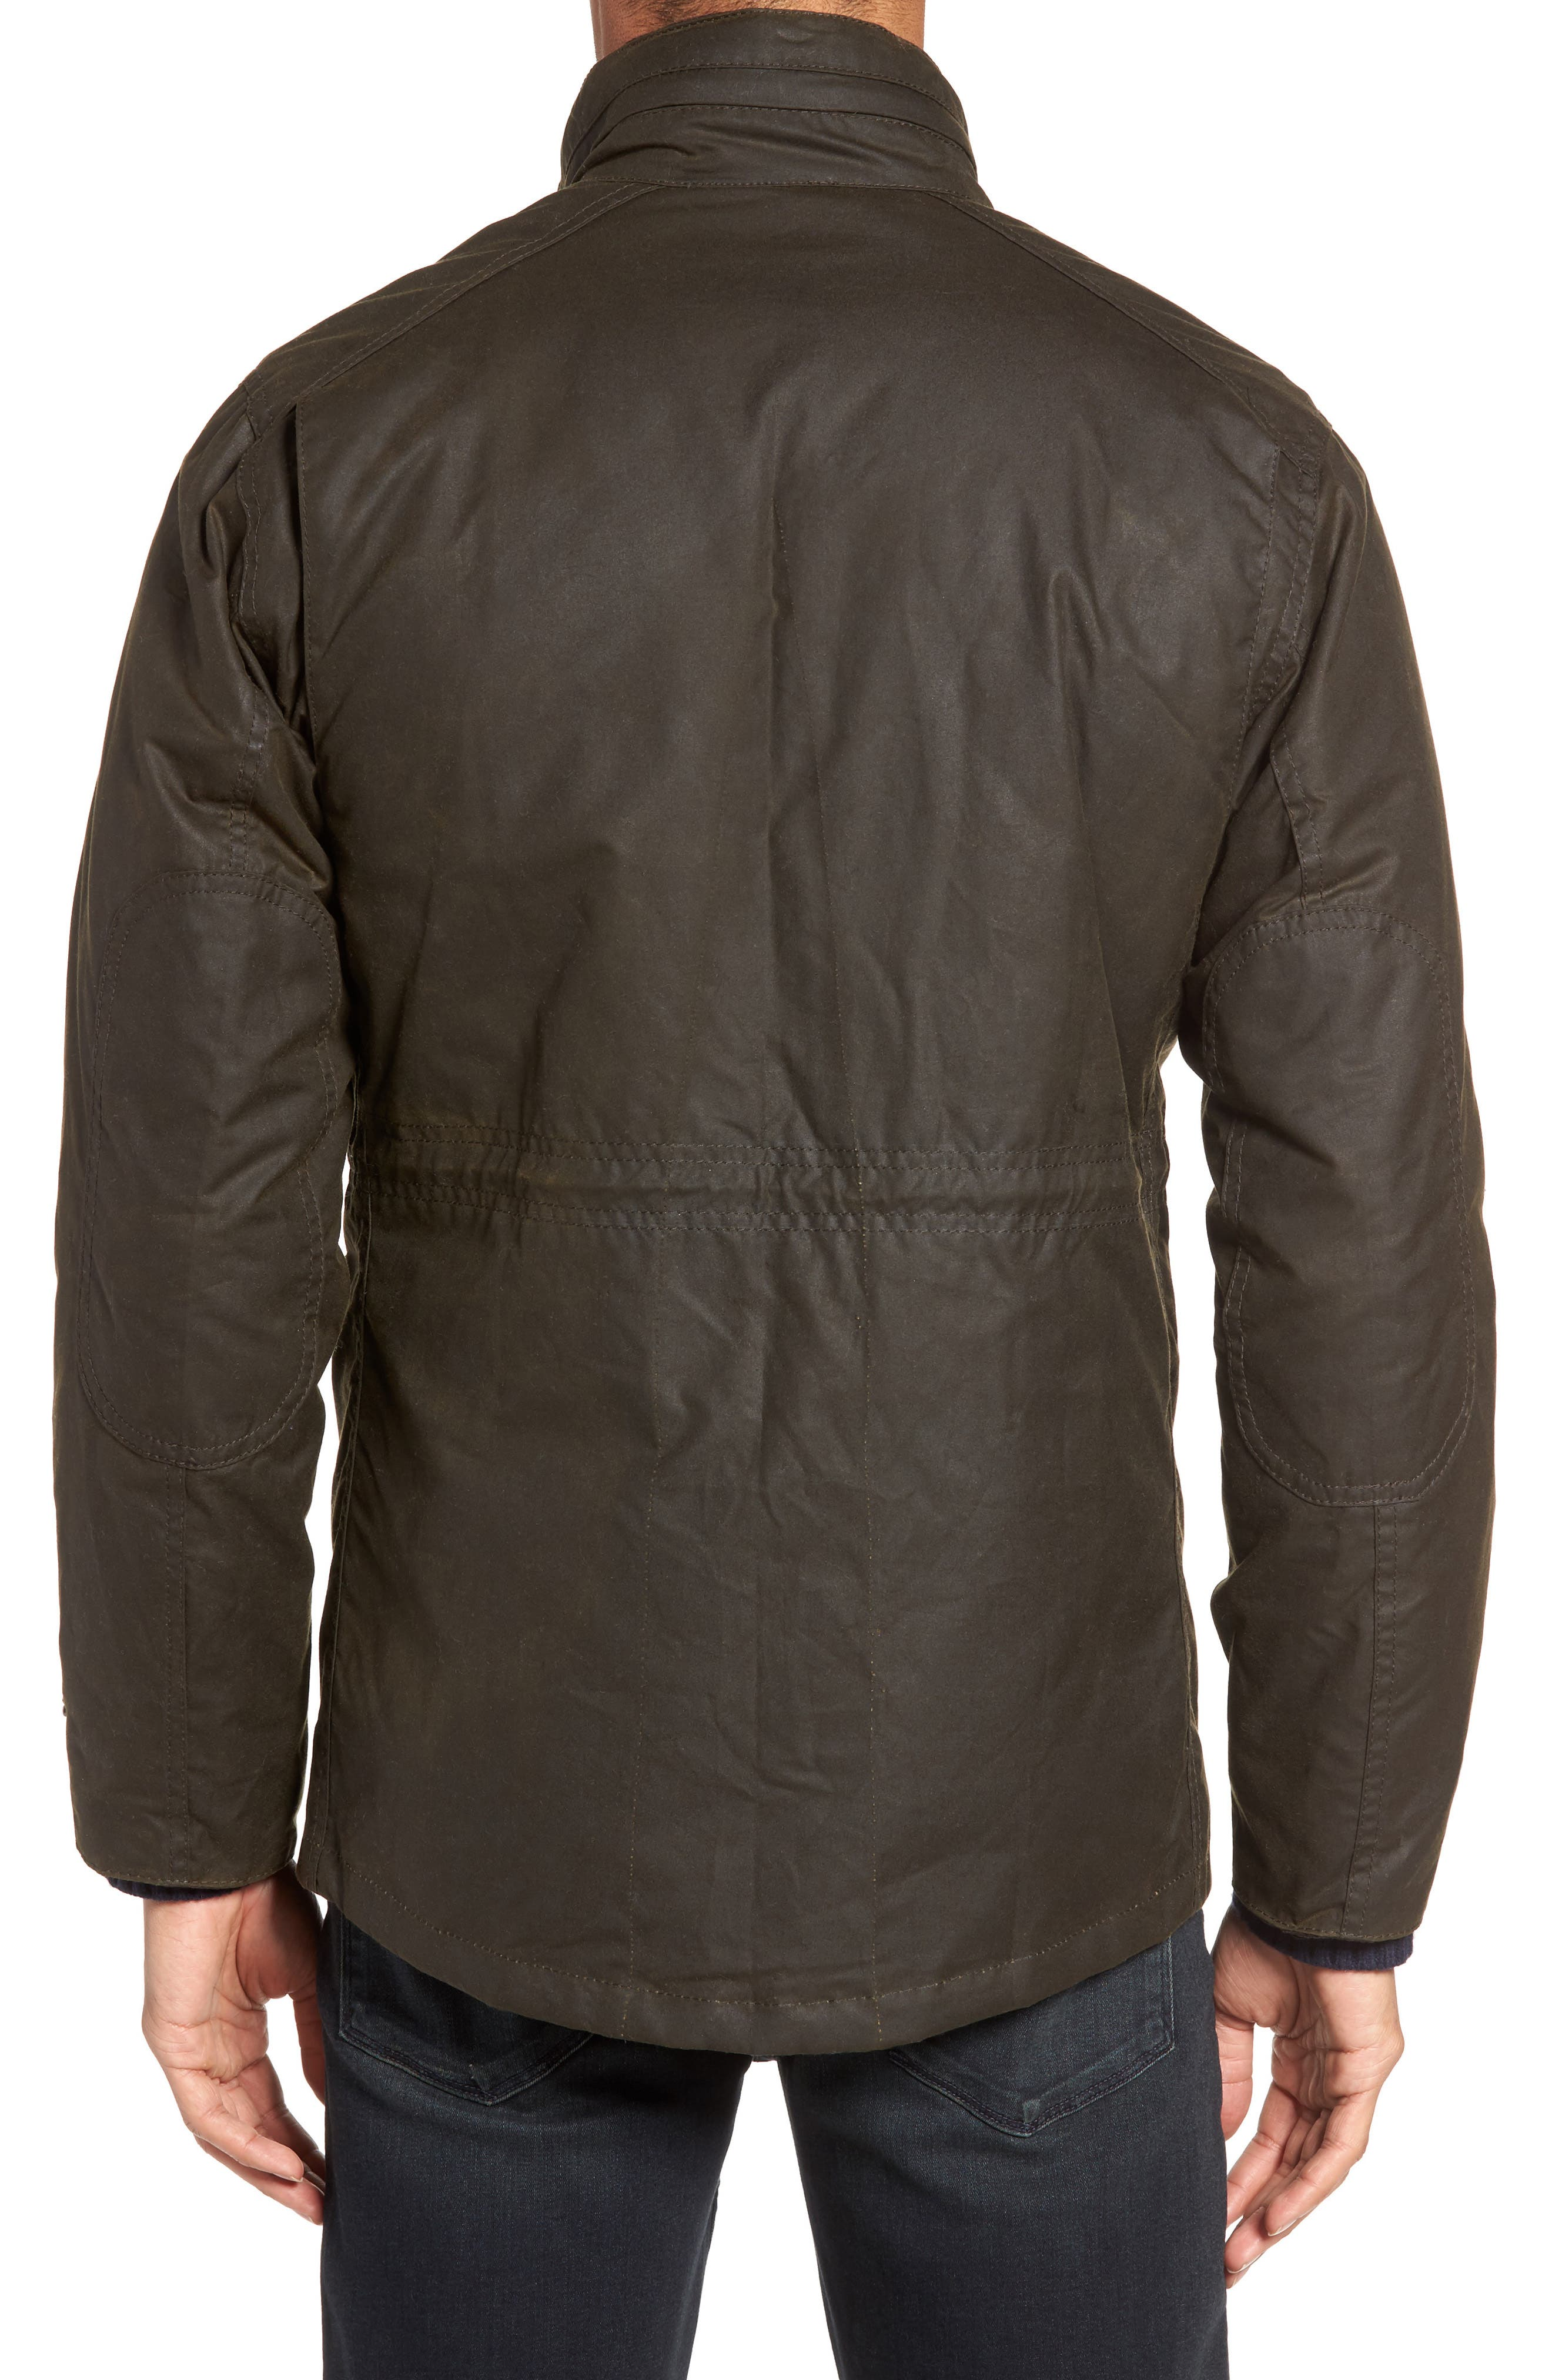 BARBOUR, Sapper Regular Fit Weatherproof Waxed Cotton Jacket, Alternate thumbnail 2, color, OLIVE